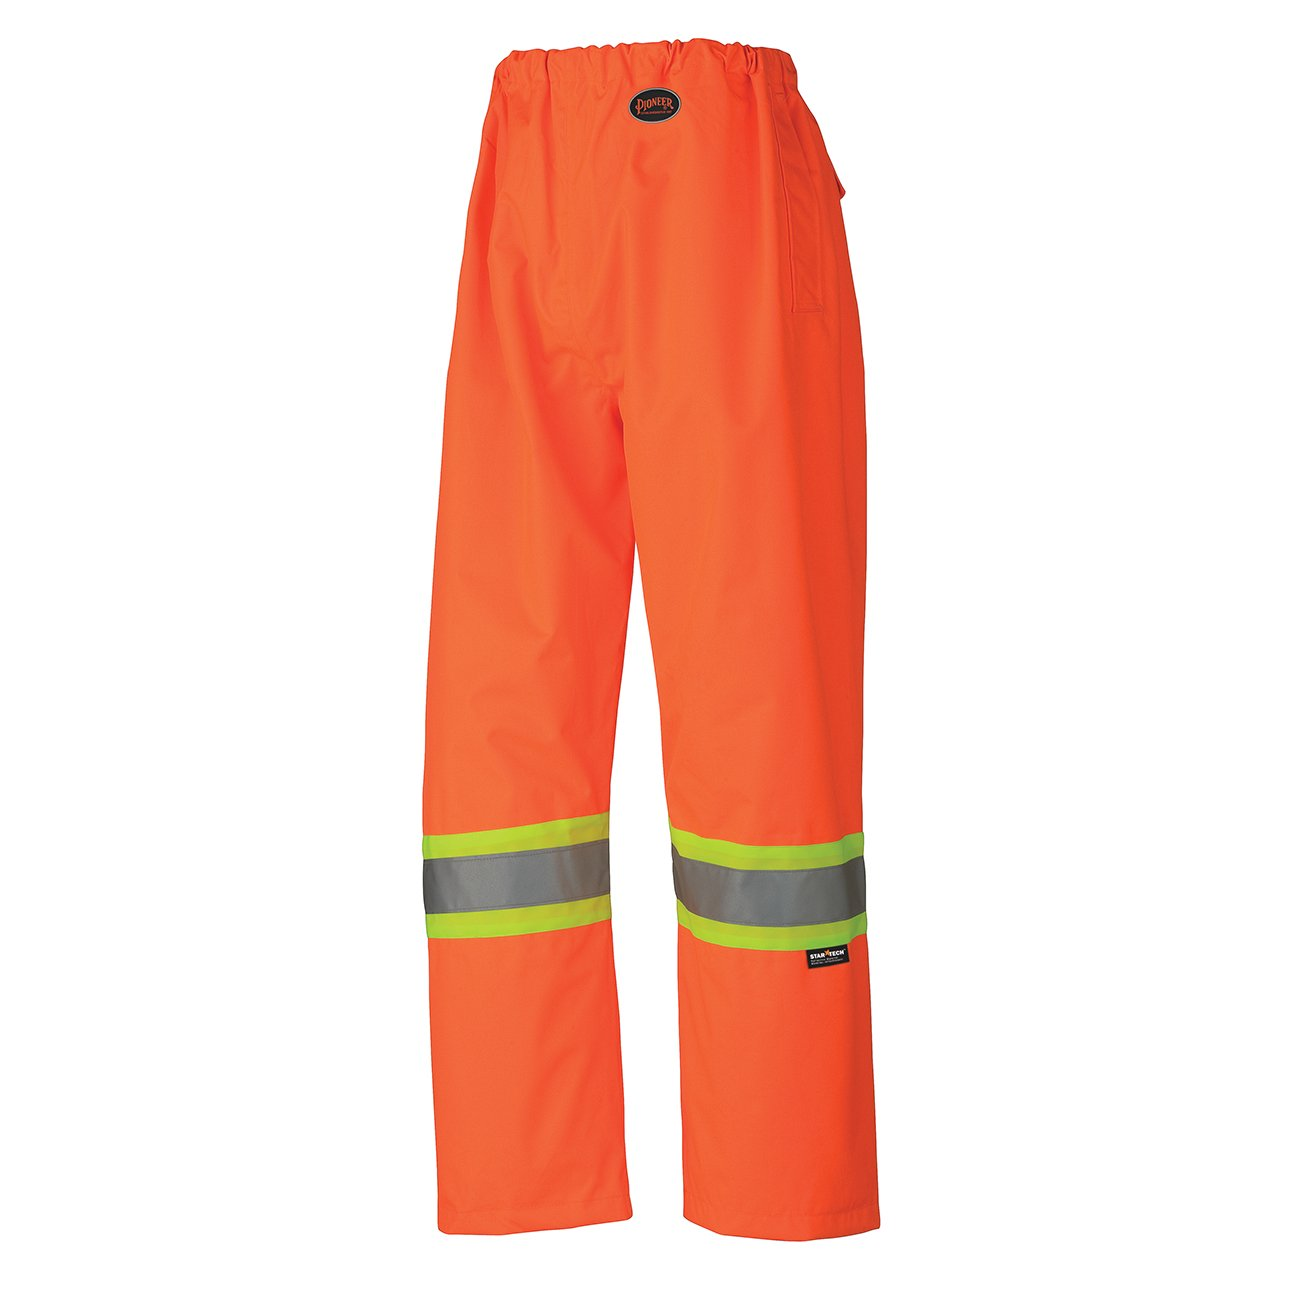 Pioneer V1110360-S High-Vis Heavy-Duty Waterproof Safety Work Pants - Elastic Waist, Yellow-Green, S